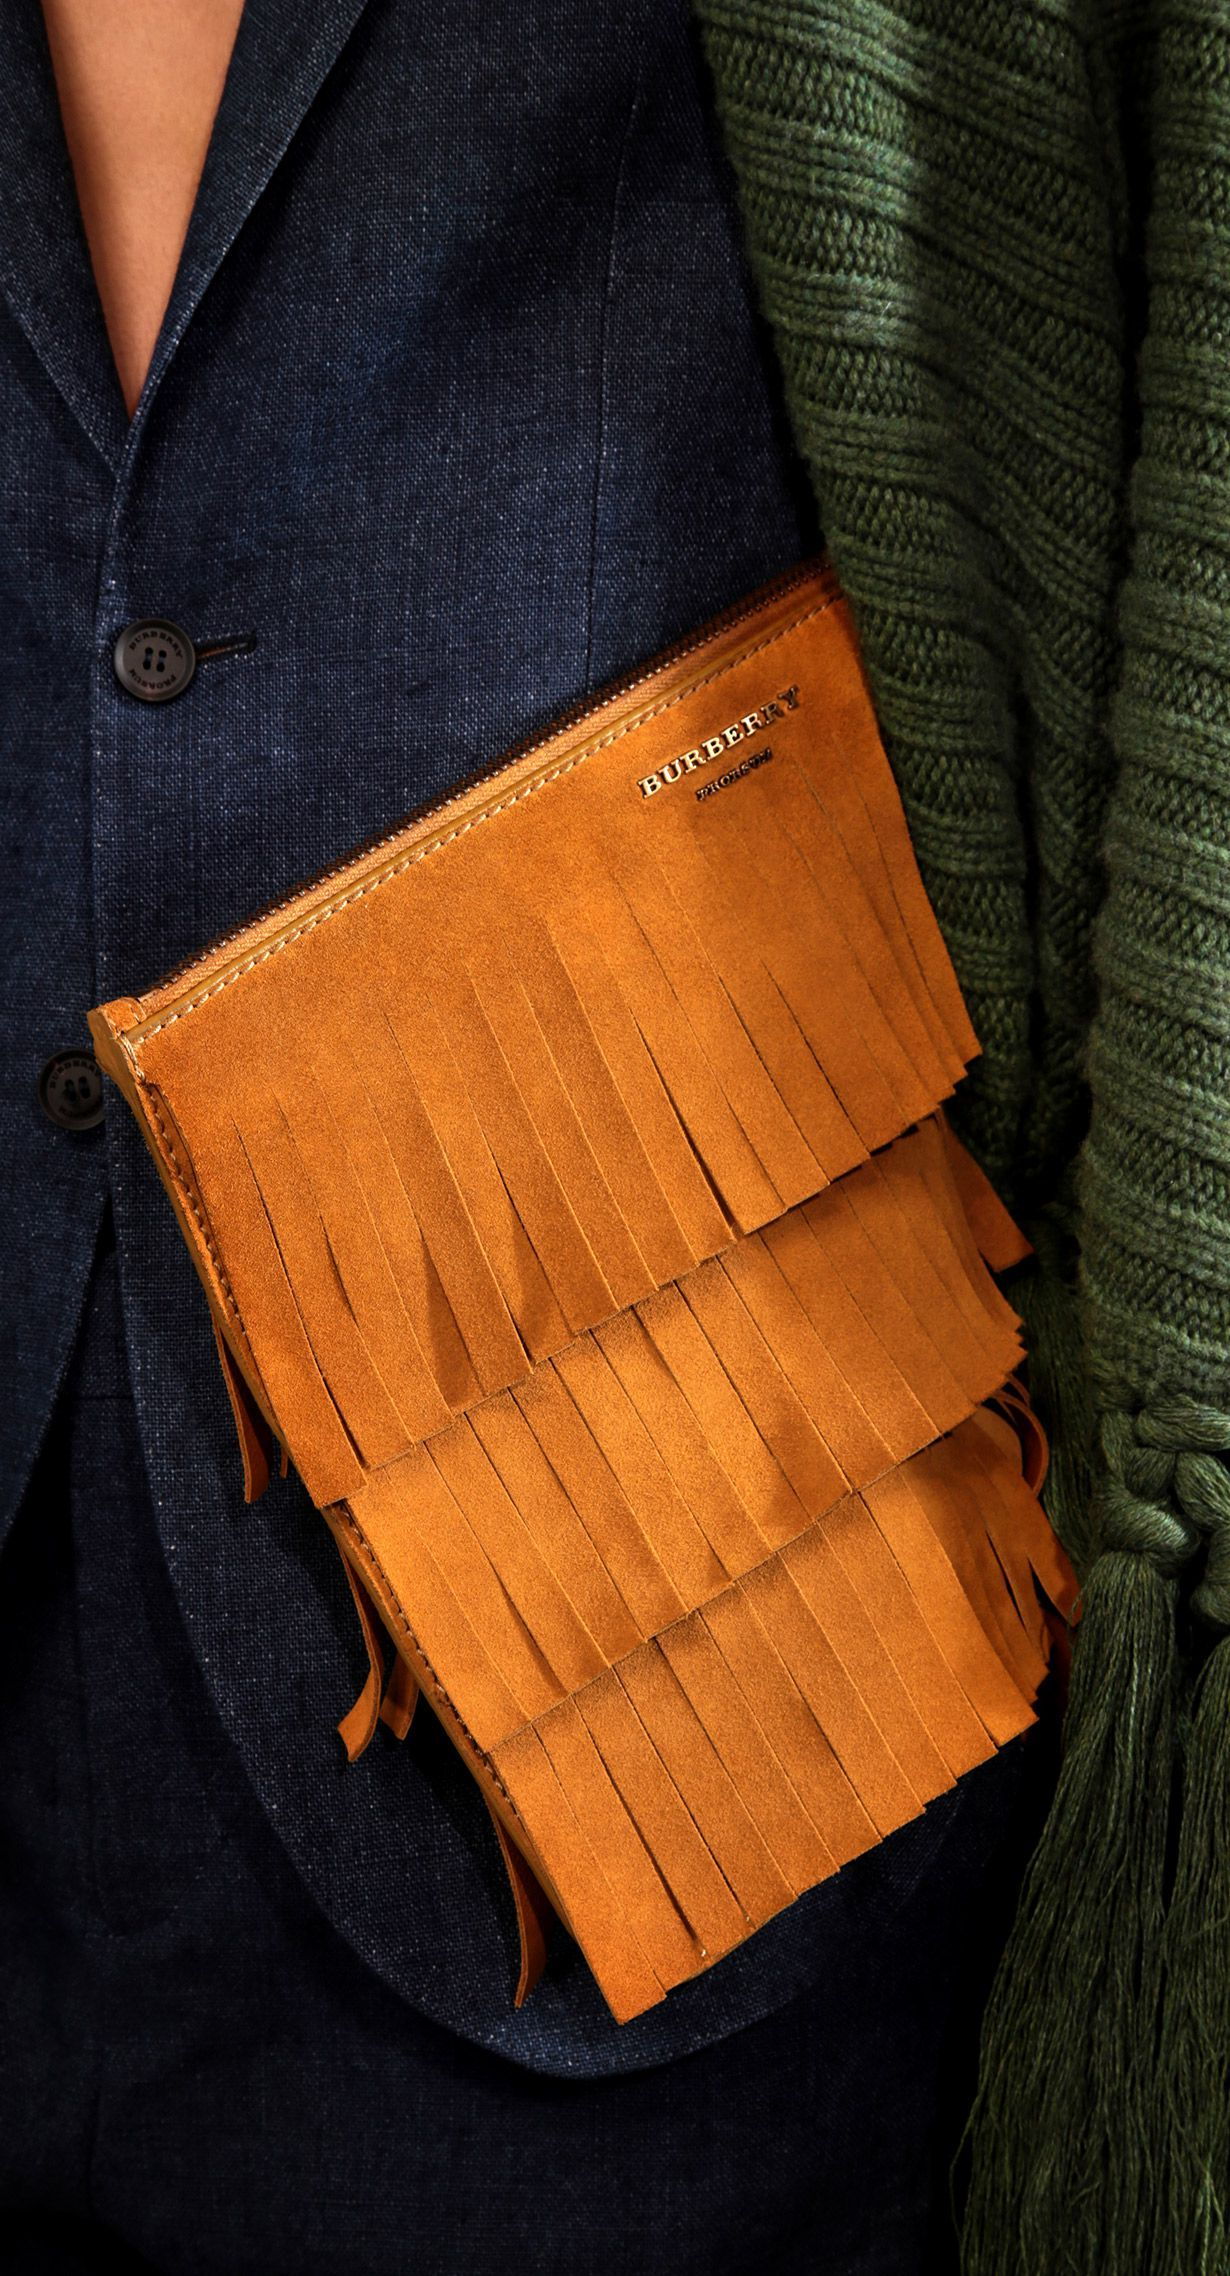 Fringe Detail Suede Document Case: One of my favourite runway accessories from the Prorsum Menswear A/W15 show